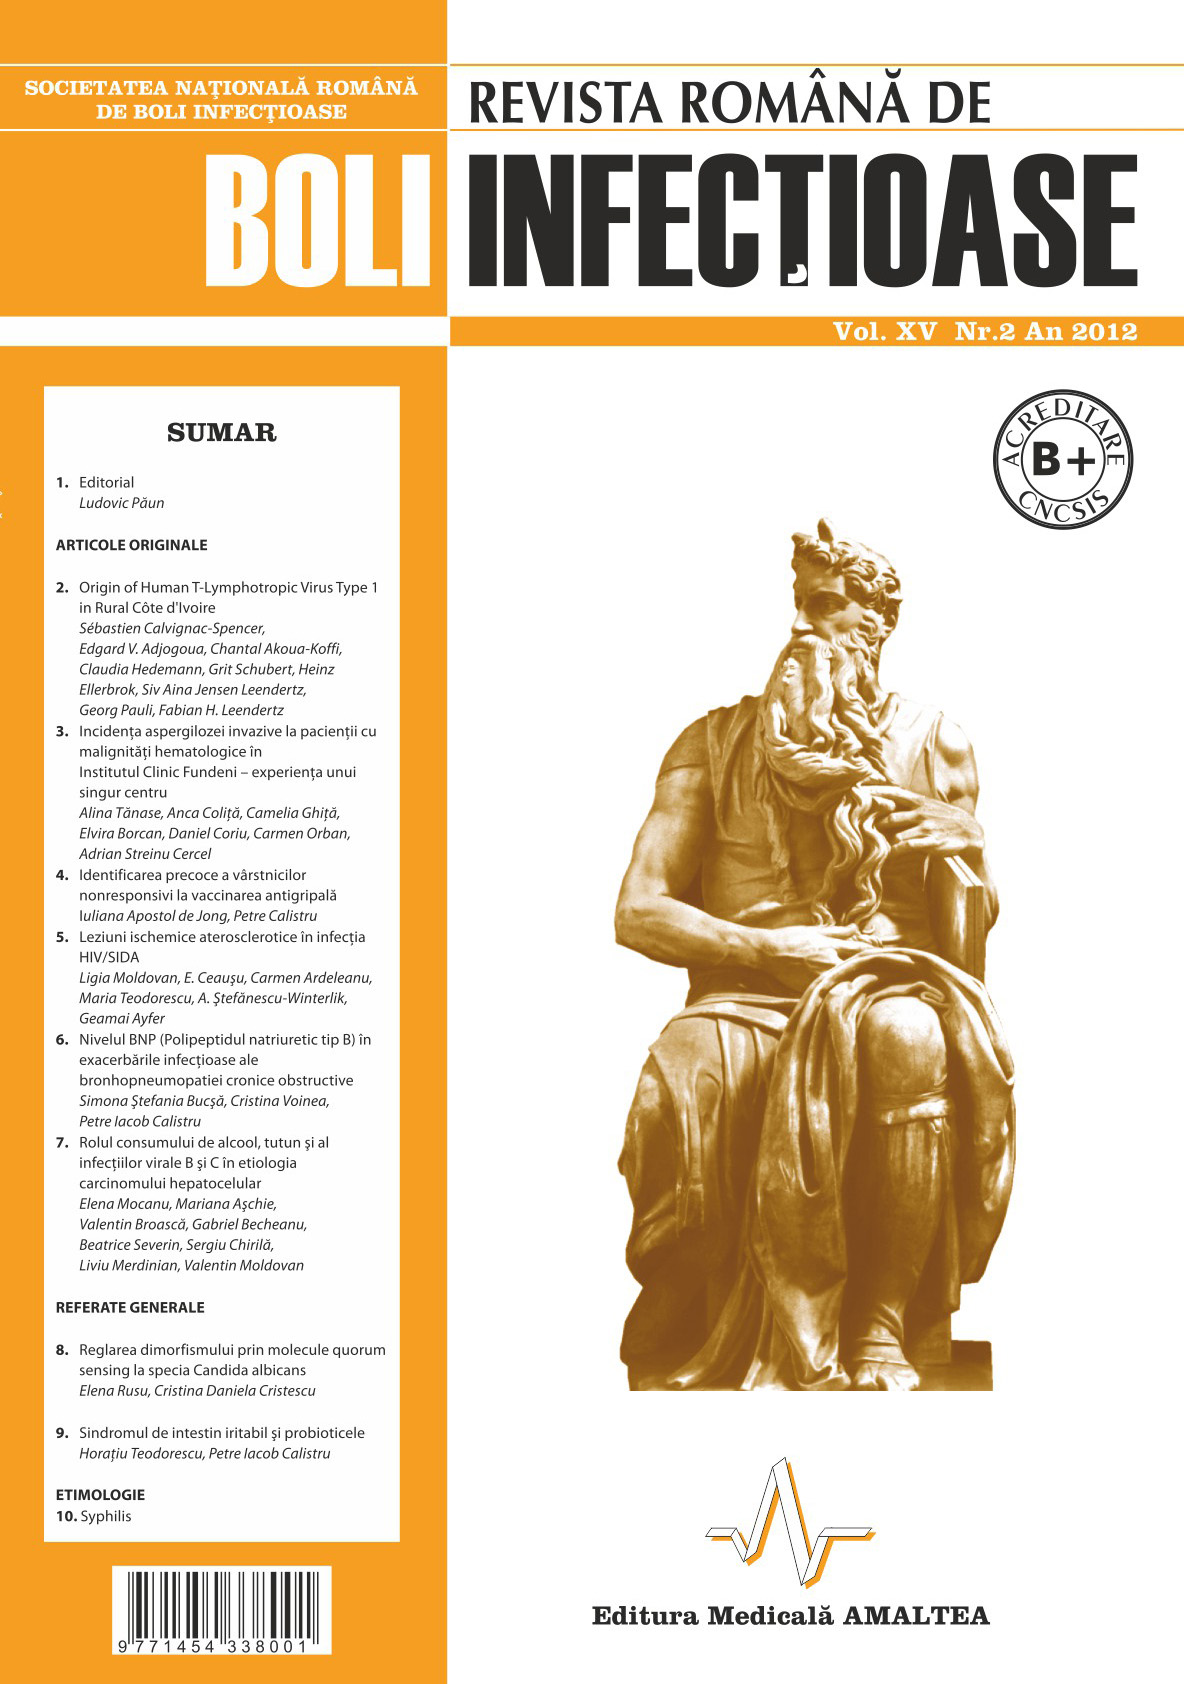 Revista Romana de Boli Infectioase | Vol. XV, No. 2, 2012